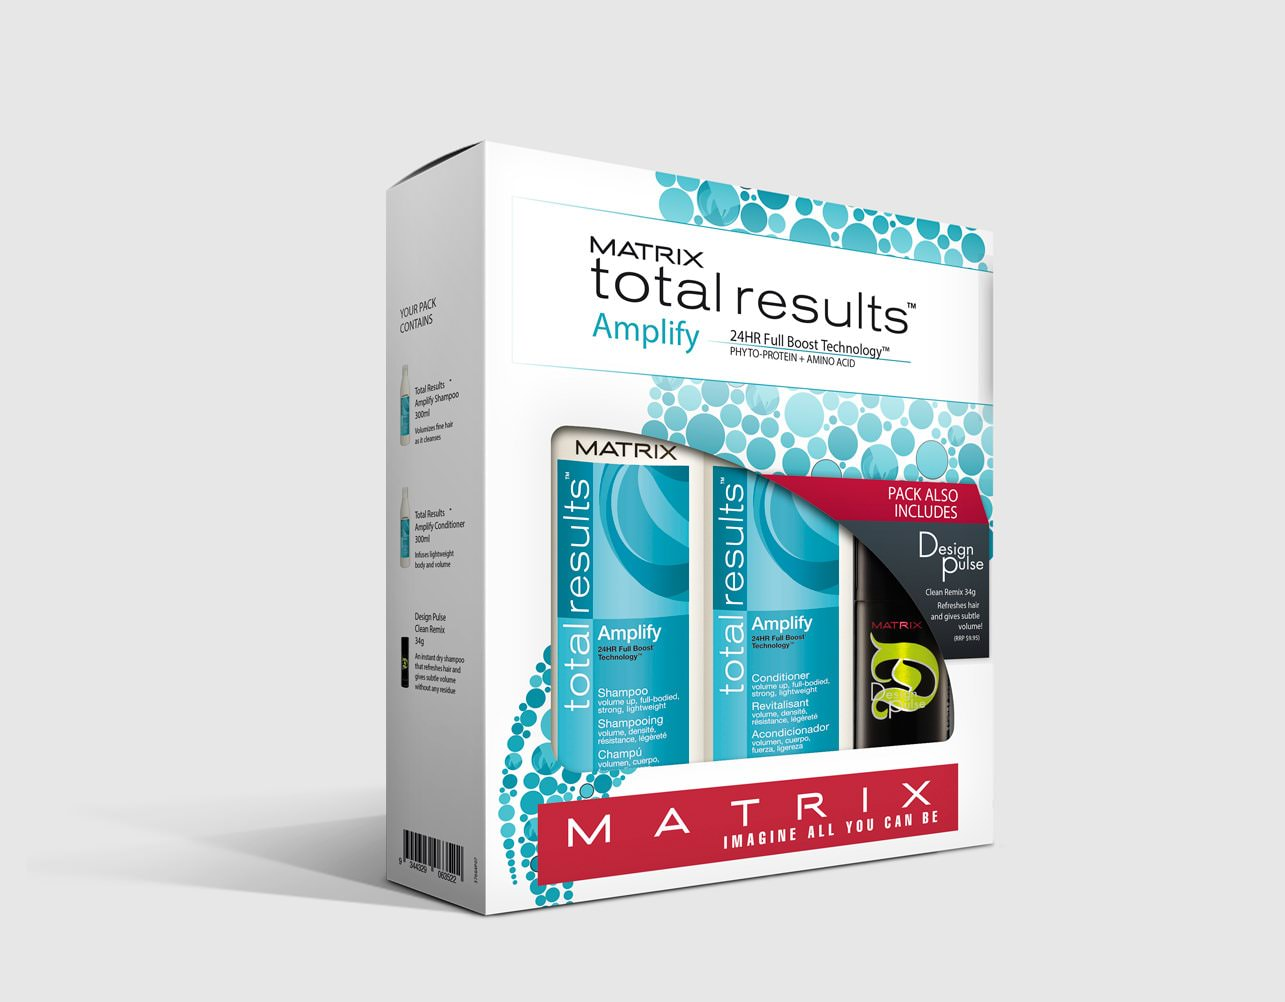 DJWFolio-Packaging_2014_Matrix_6